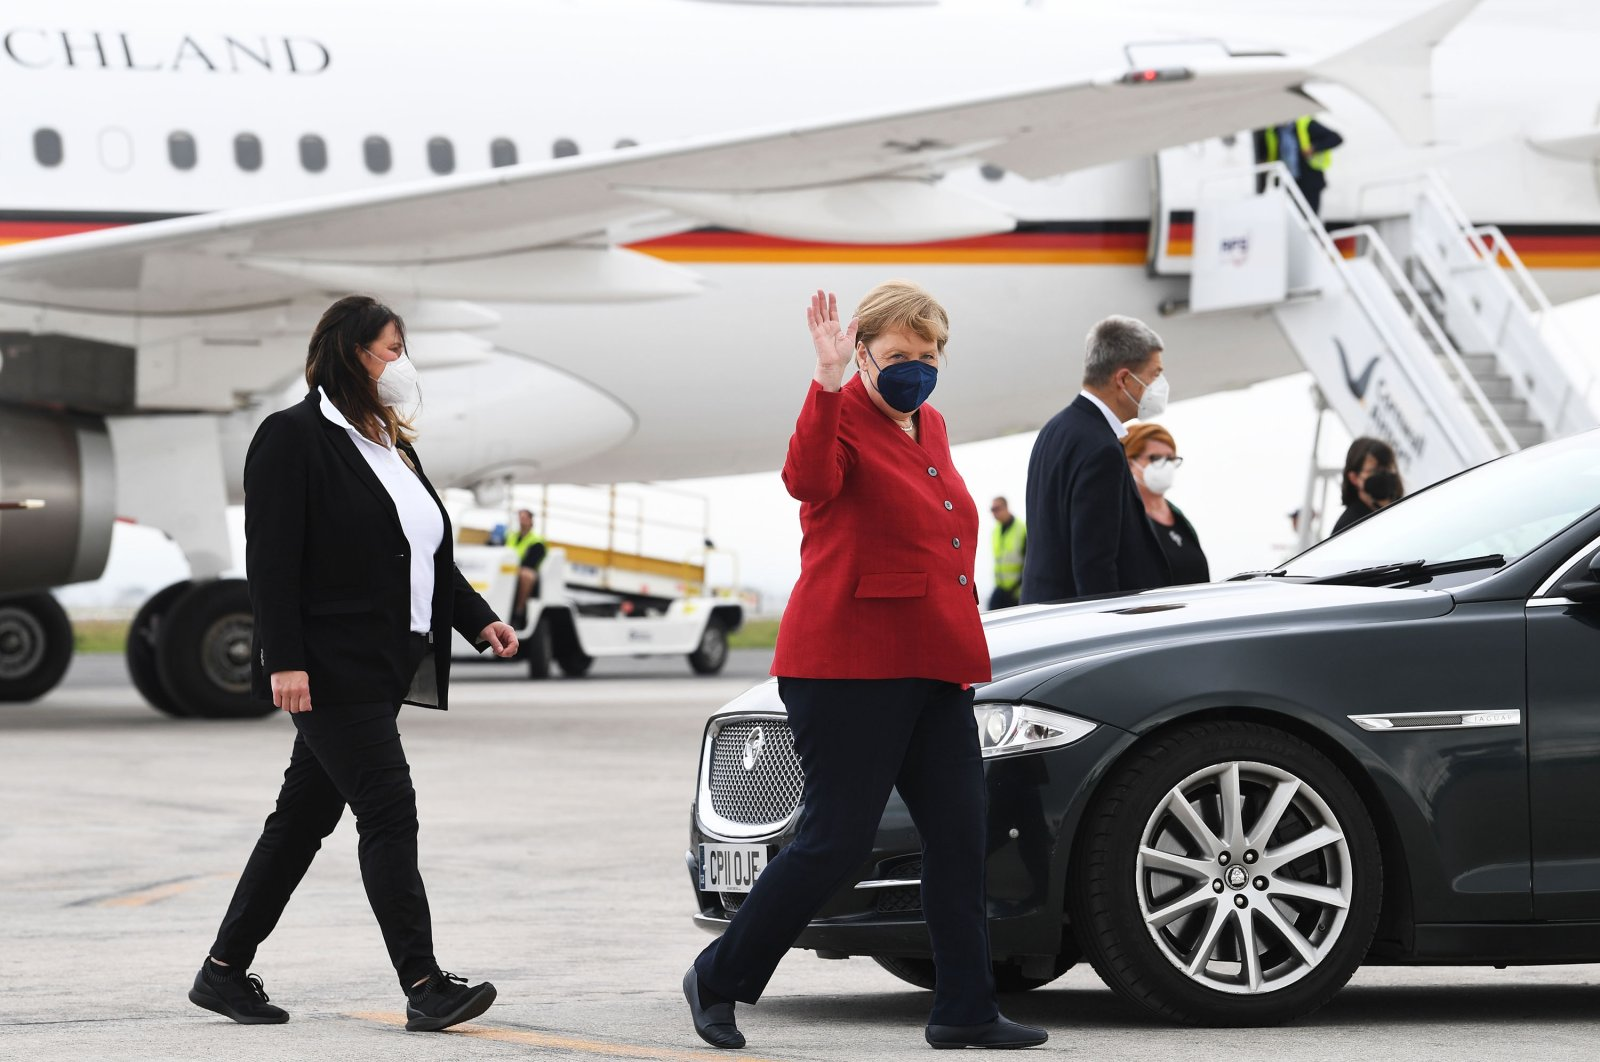 German Chancellor Angela Merkel arrives at Newquay Airport on June 11, 2021, Newquay, England. (Getty Images)